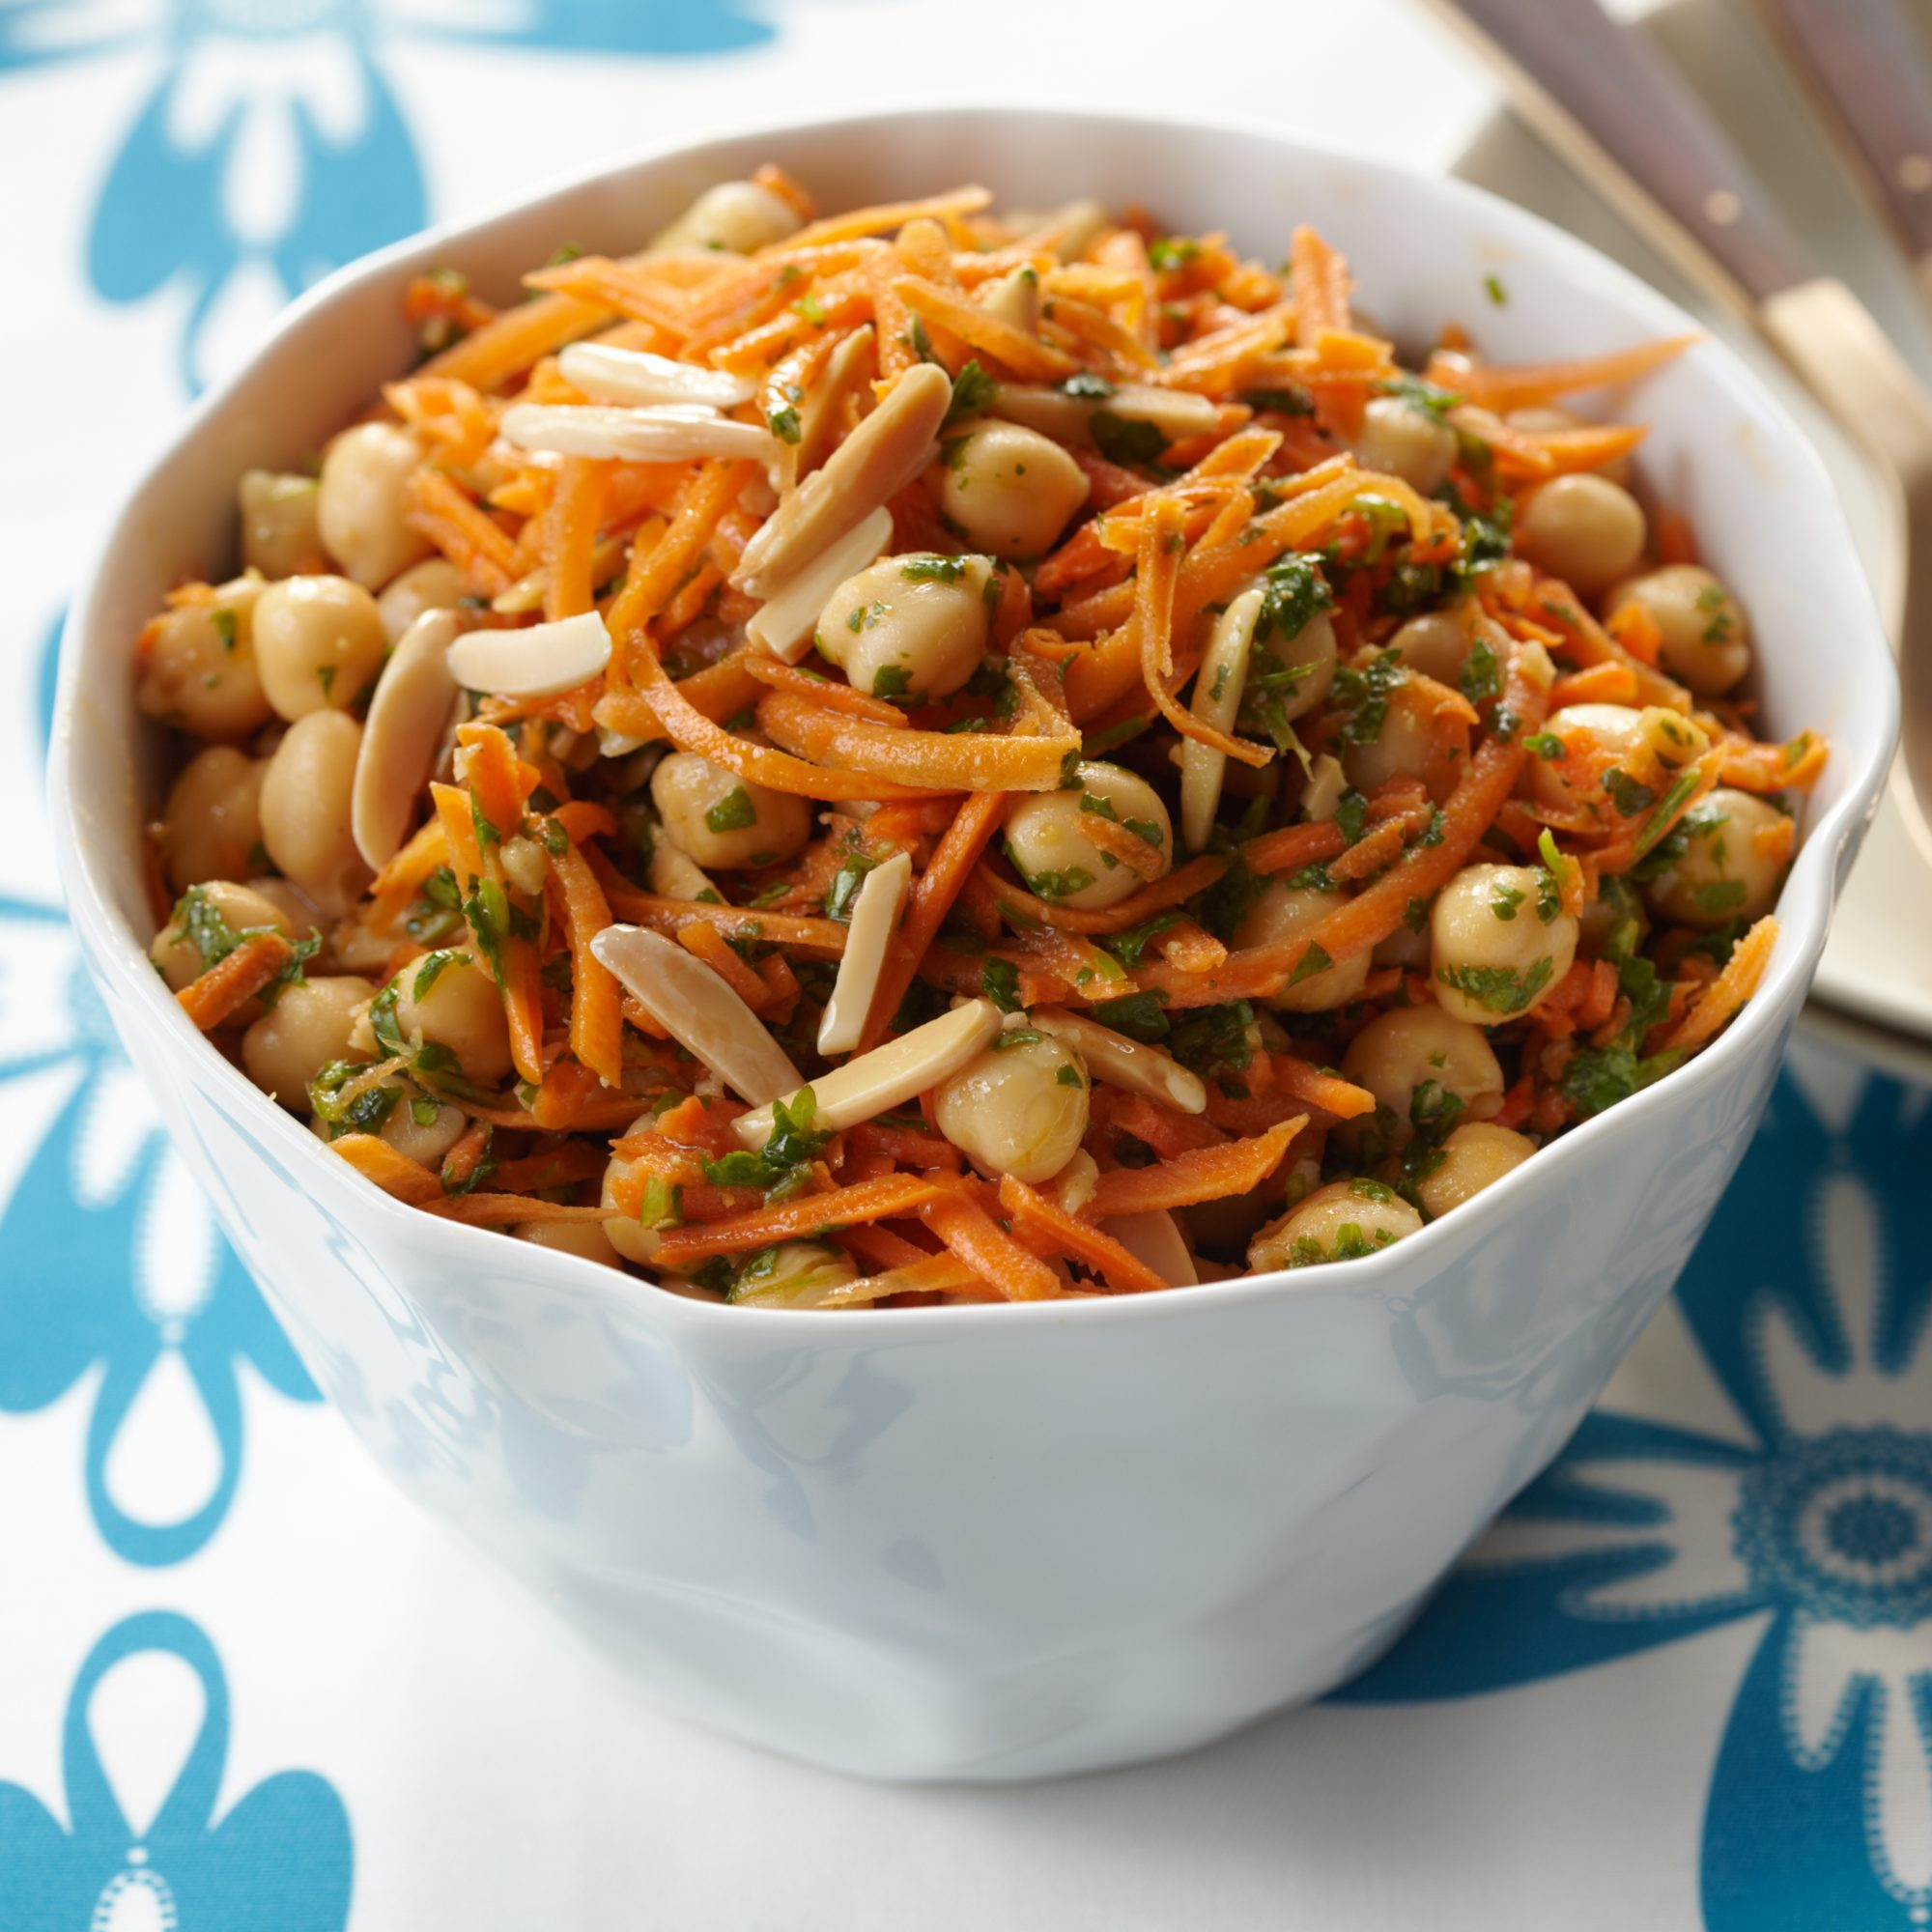 Carrot-and-Chickpea Salad